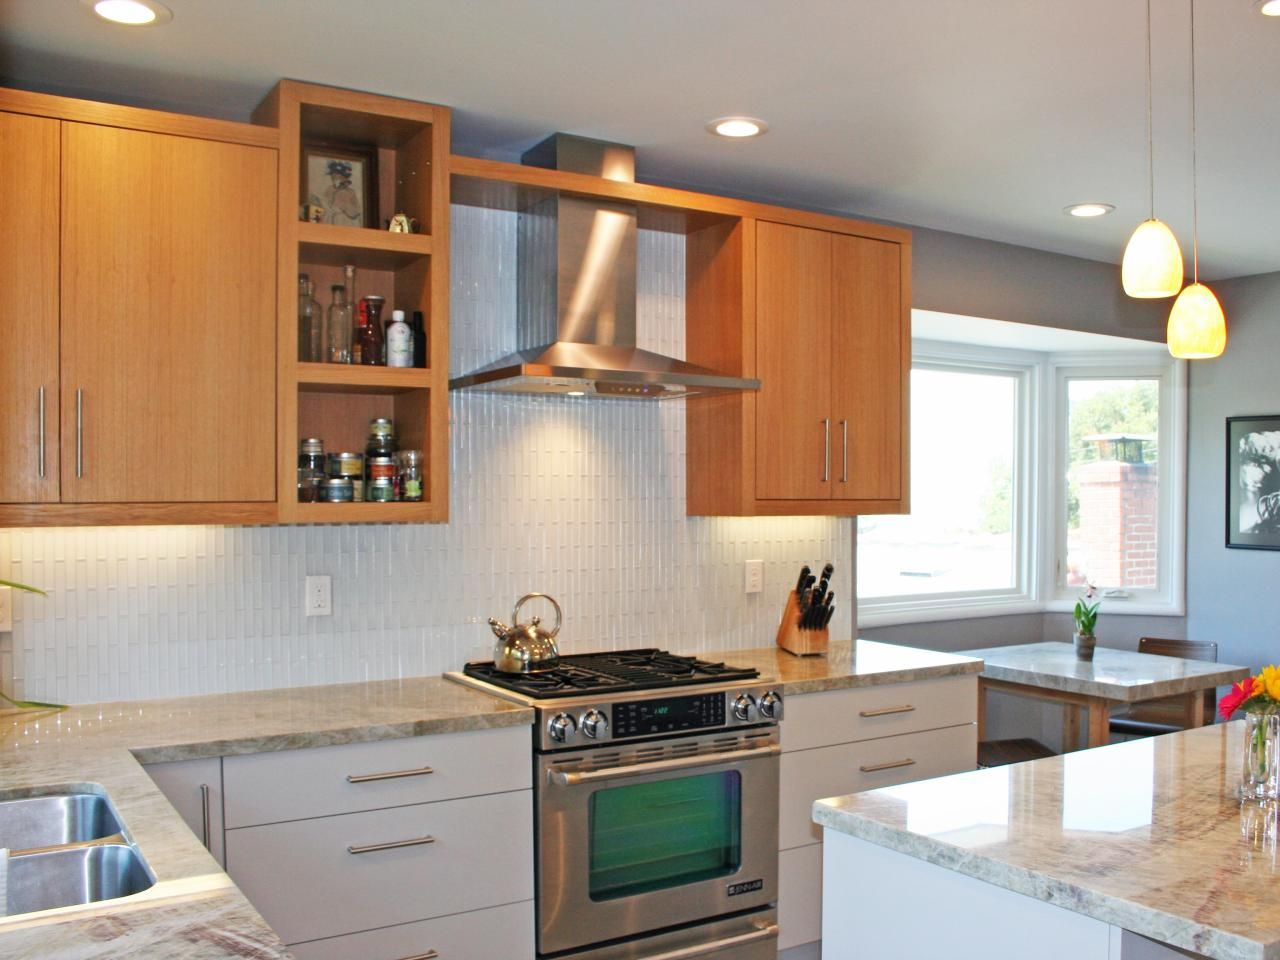 This glass tile backsplash completes the clean look of this